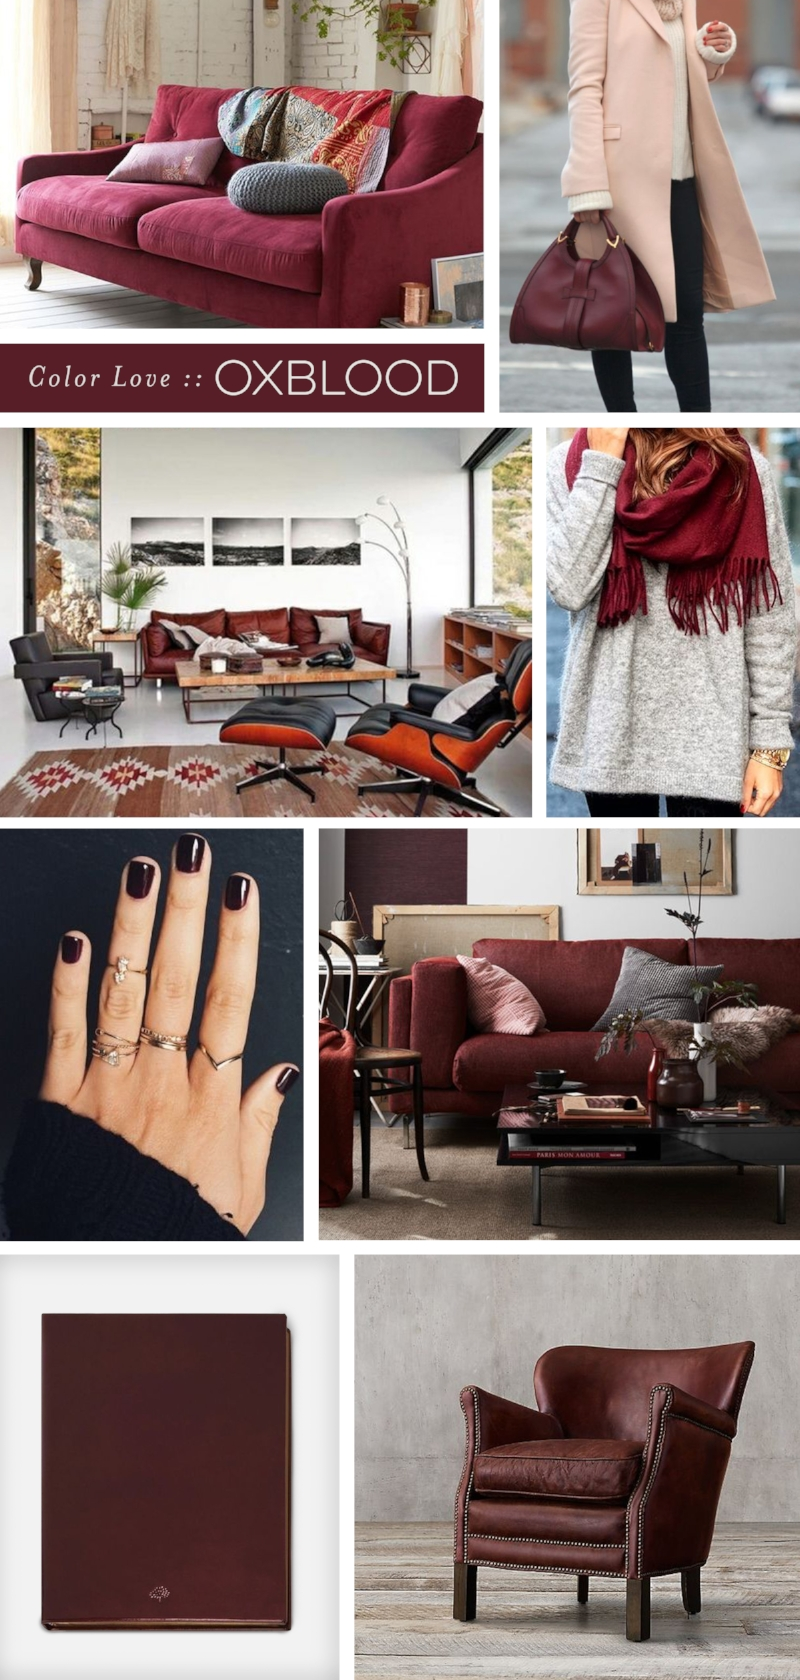 Oxblood Moodboard | all images via Pinterest